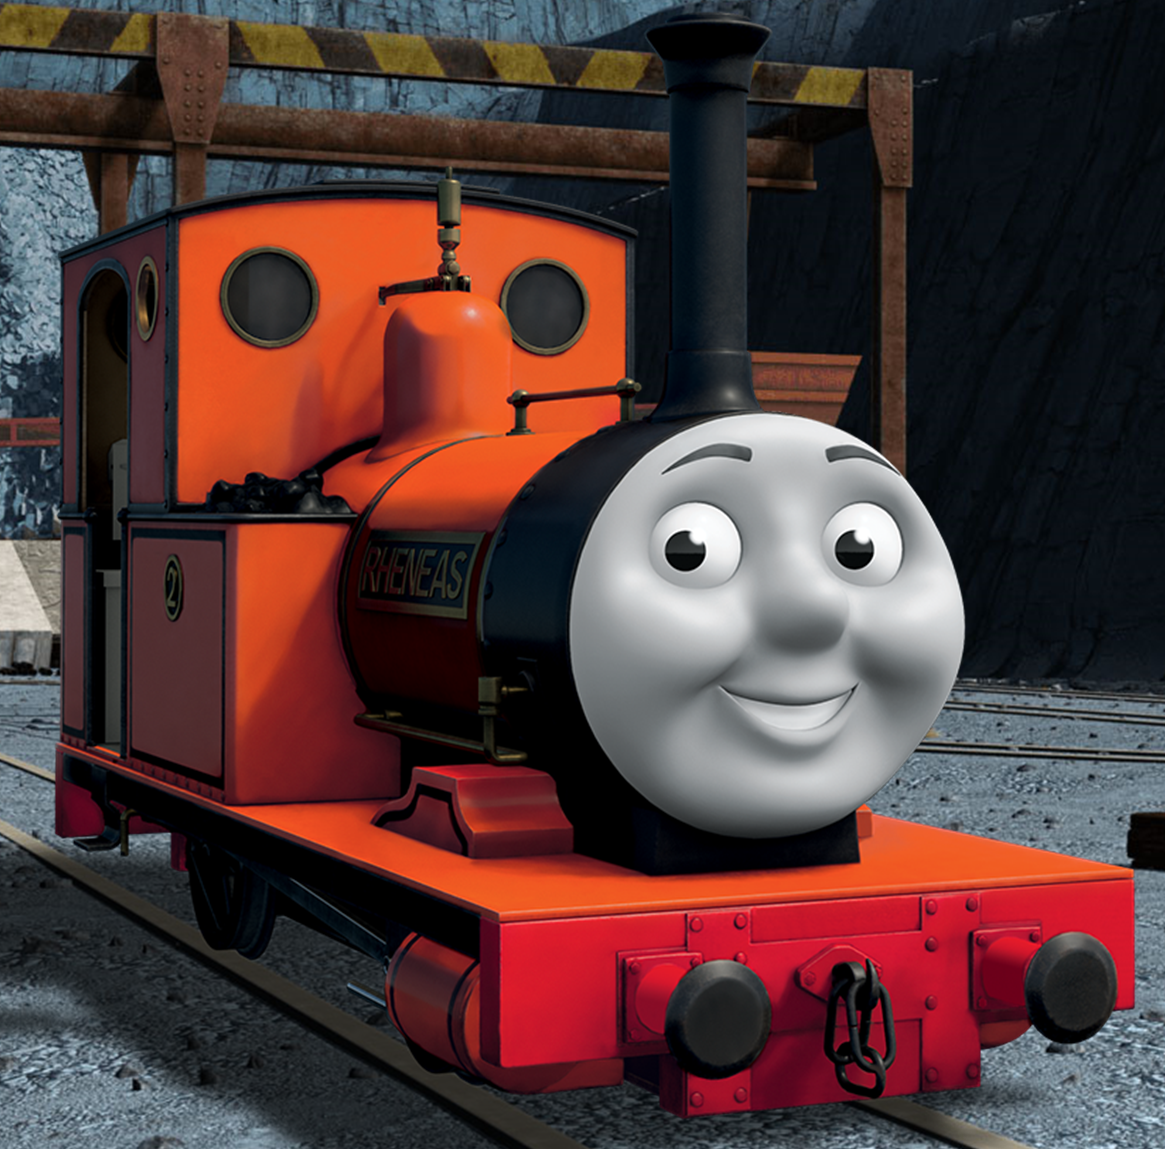 rheneas thomas the tank engine wikia fandom powered by